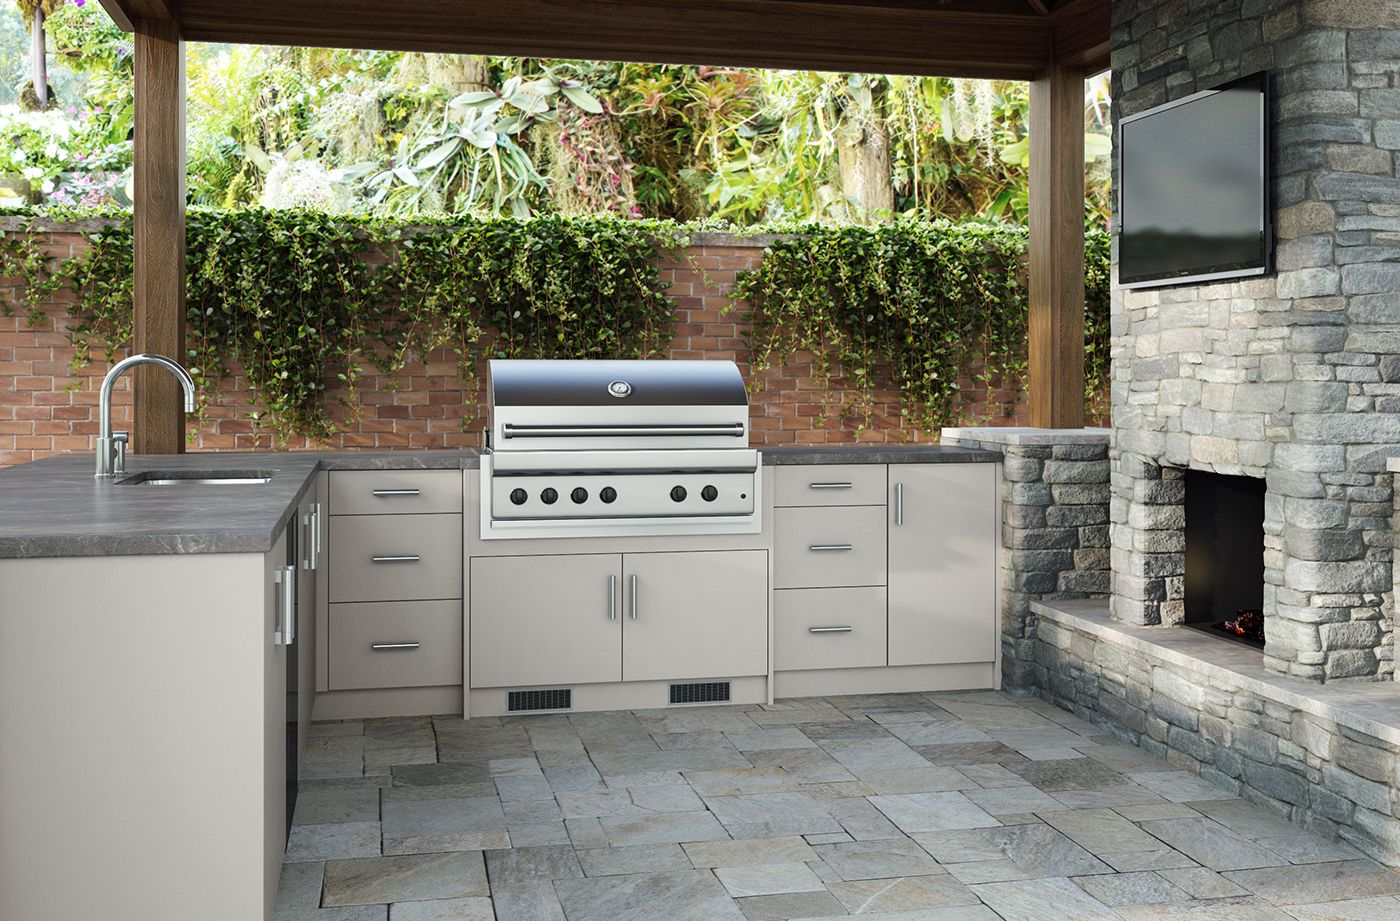 Costco Weatherstrong Outdoor Cabinetry In 2020 Outdoor Kitchen Cabinets Assembled Kitchen Cabinets Modern Outdoor Kitchen